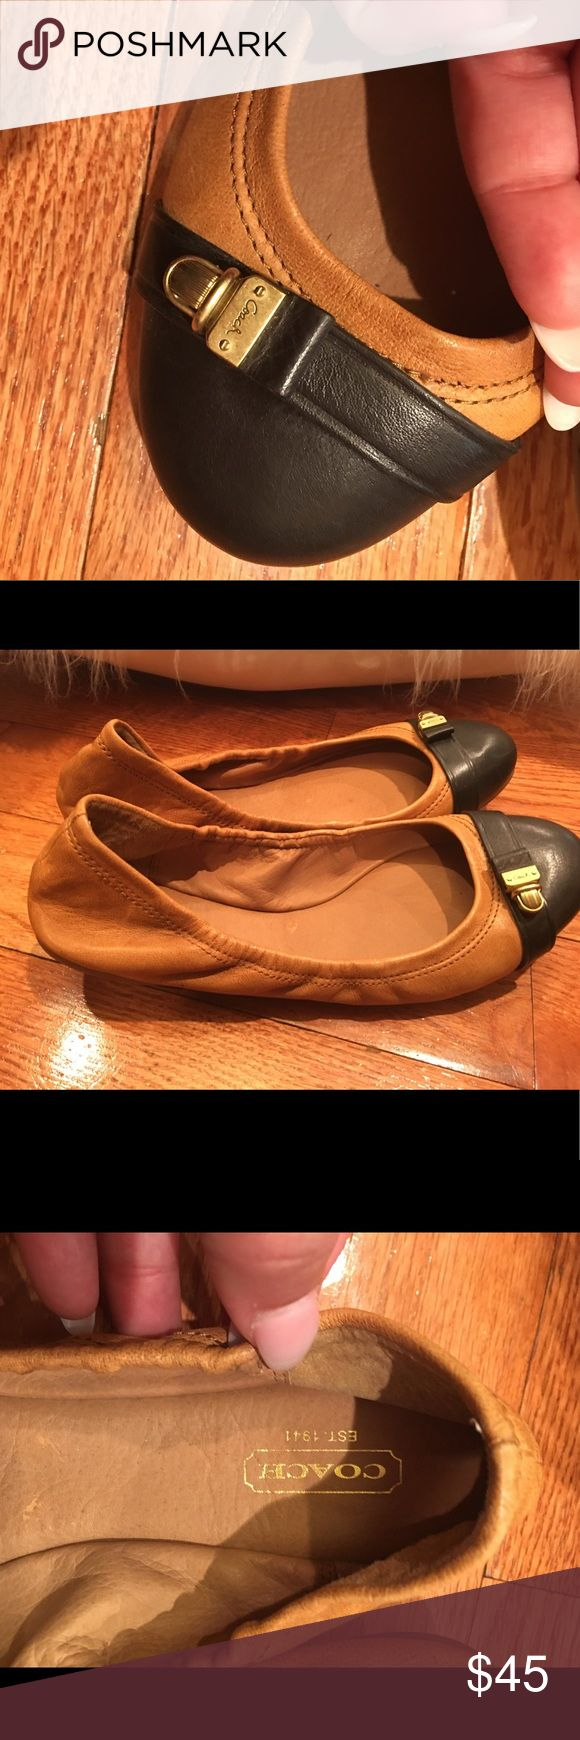 Coach Flats Shoes Women leather Coach ballet Coach Flats Shoes Women leather Coach ballet flats Black Brown Size 9B like new Coach Shoes Flats & Loafers